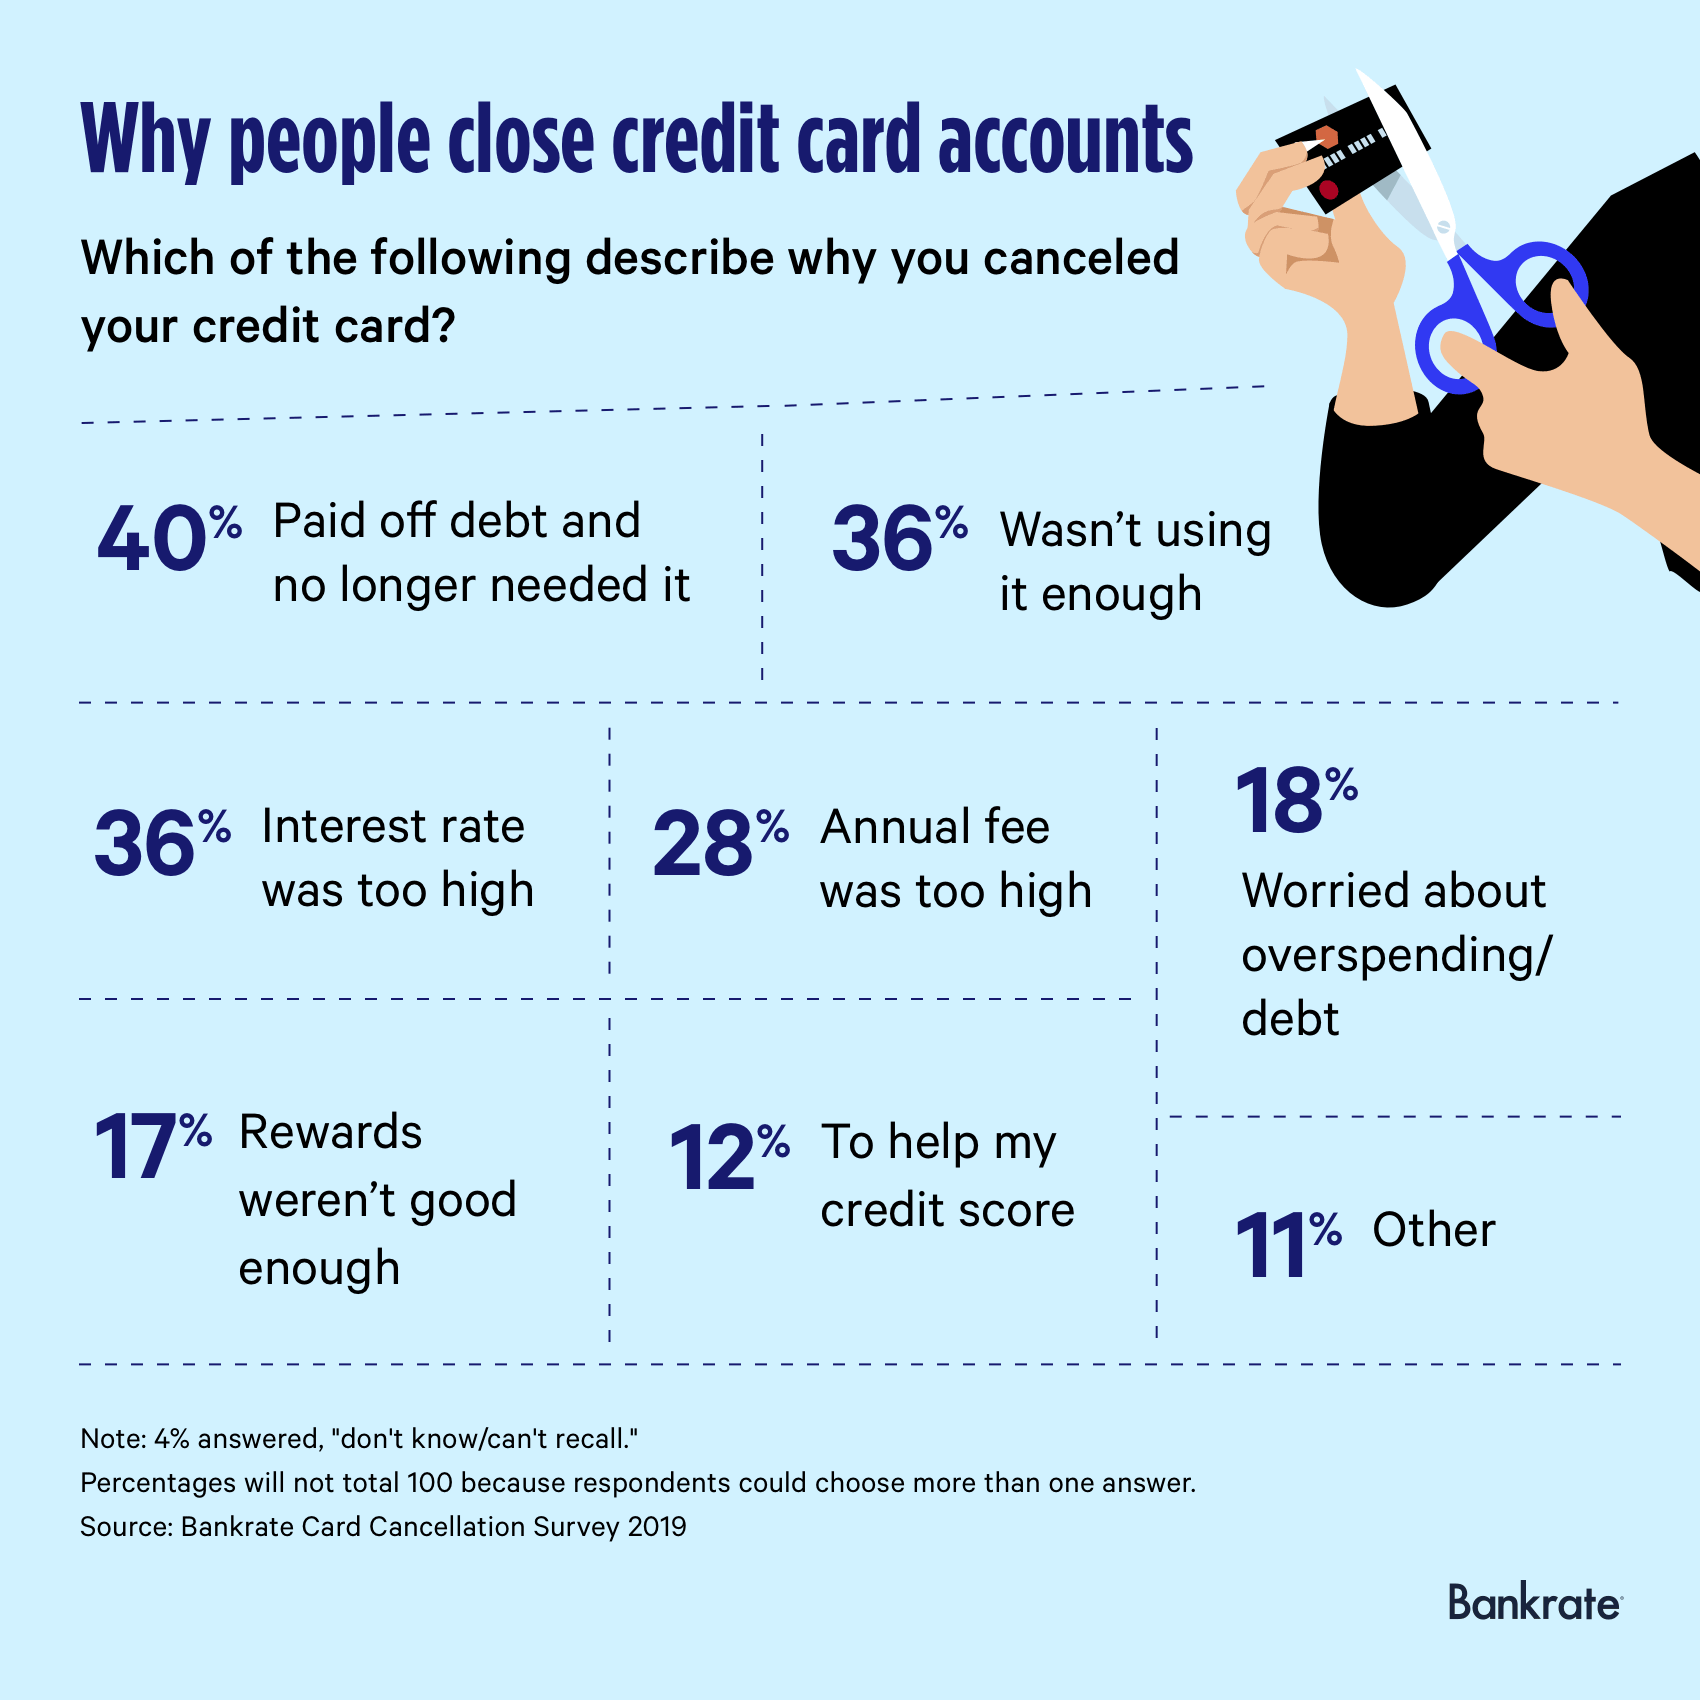 Reasons why credit card holders canceled their accounts